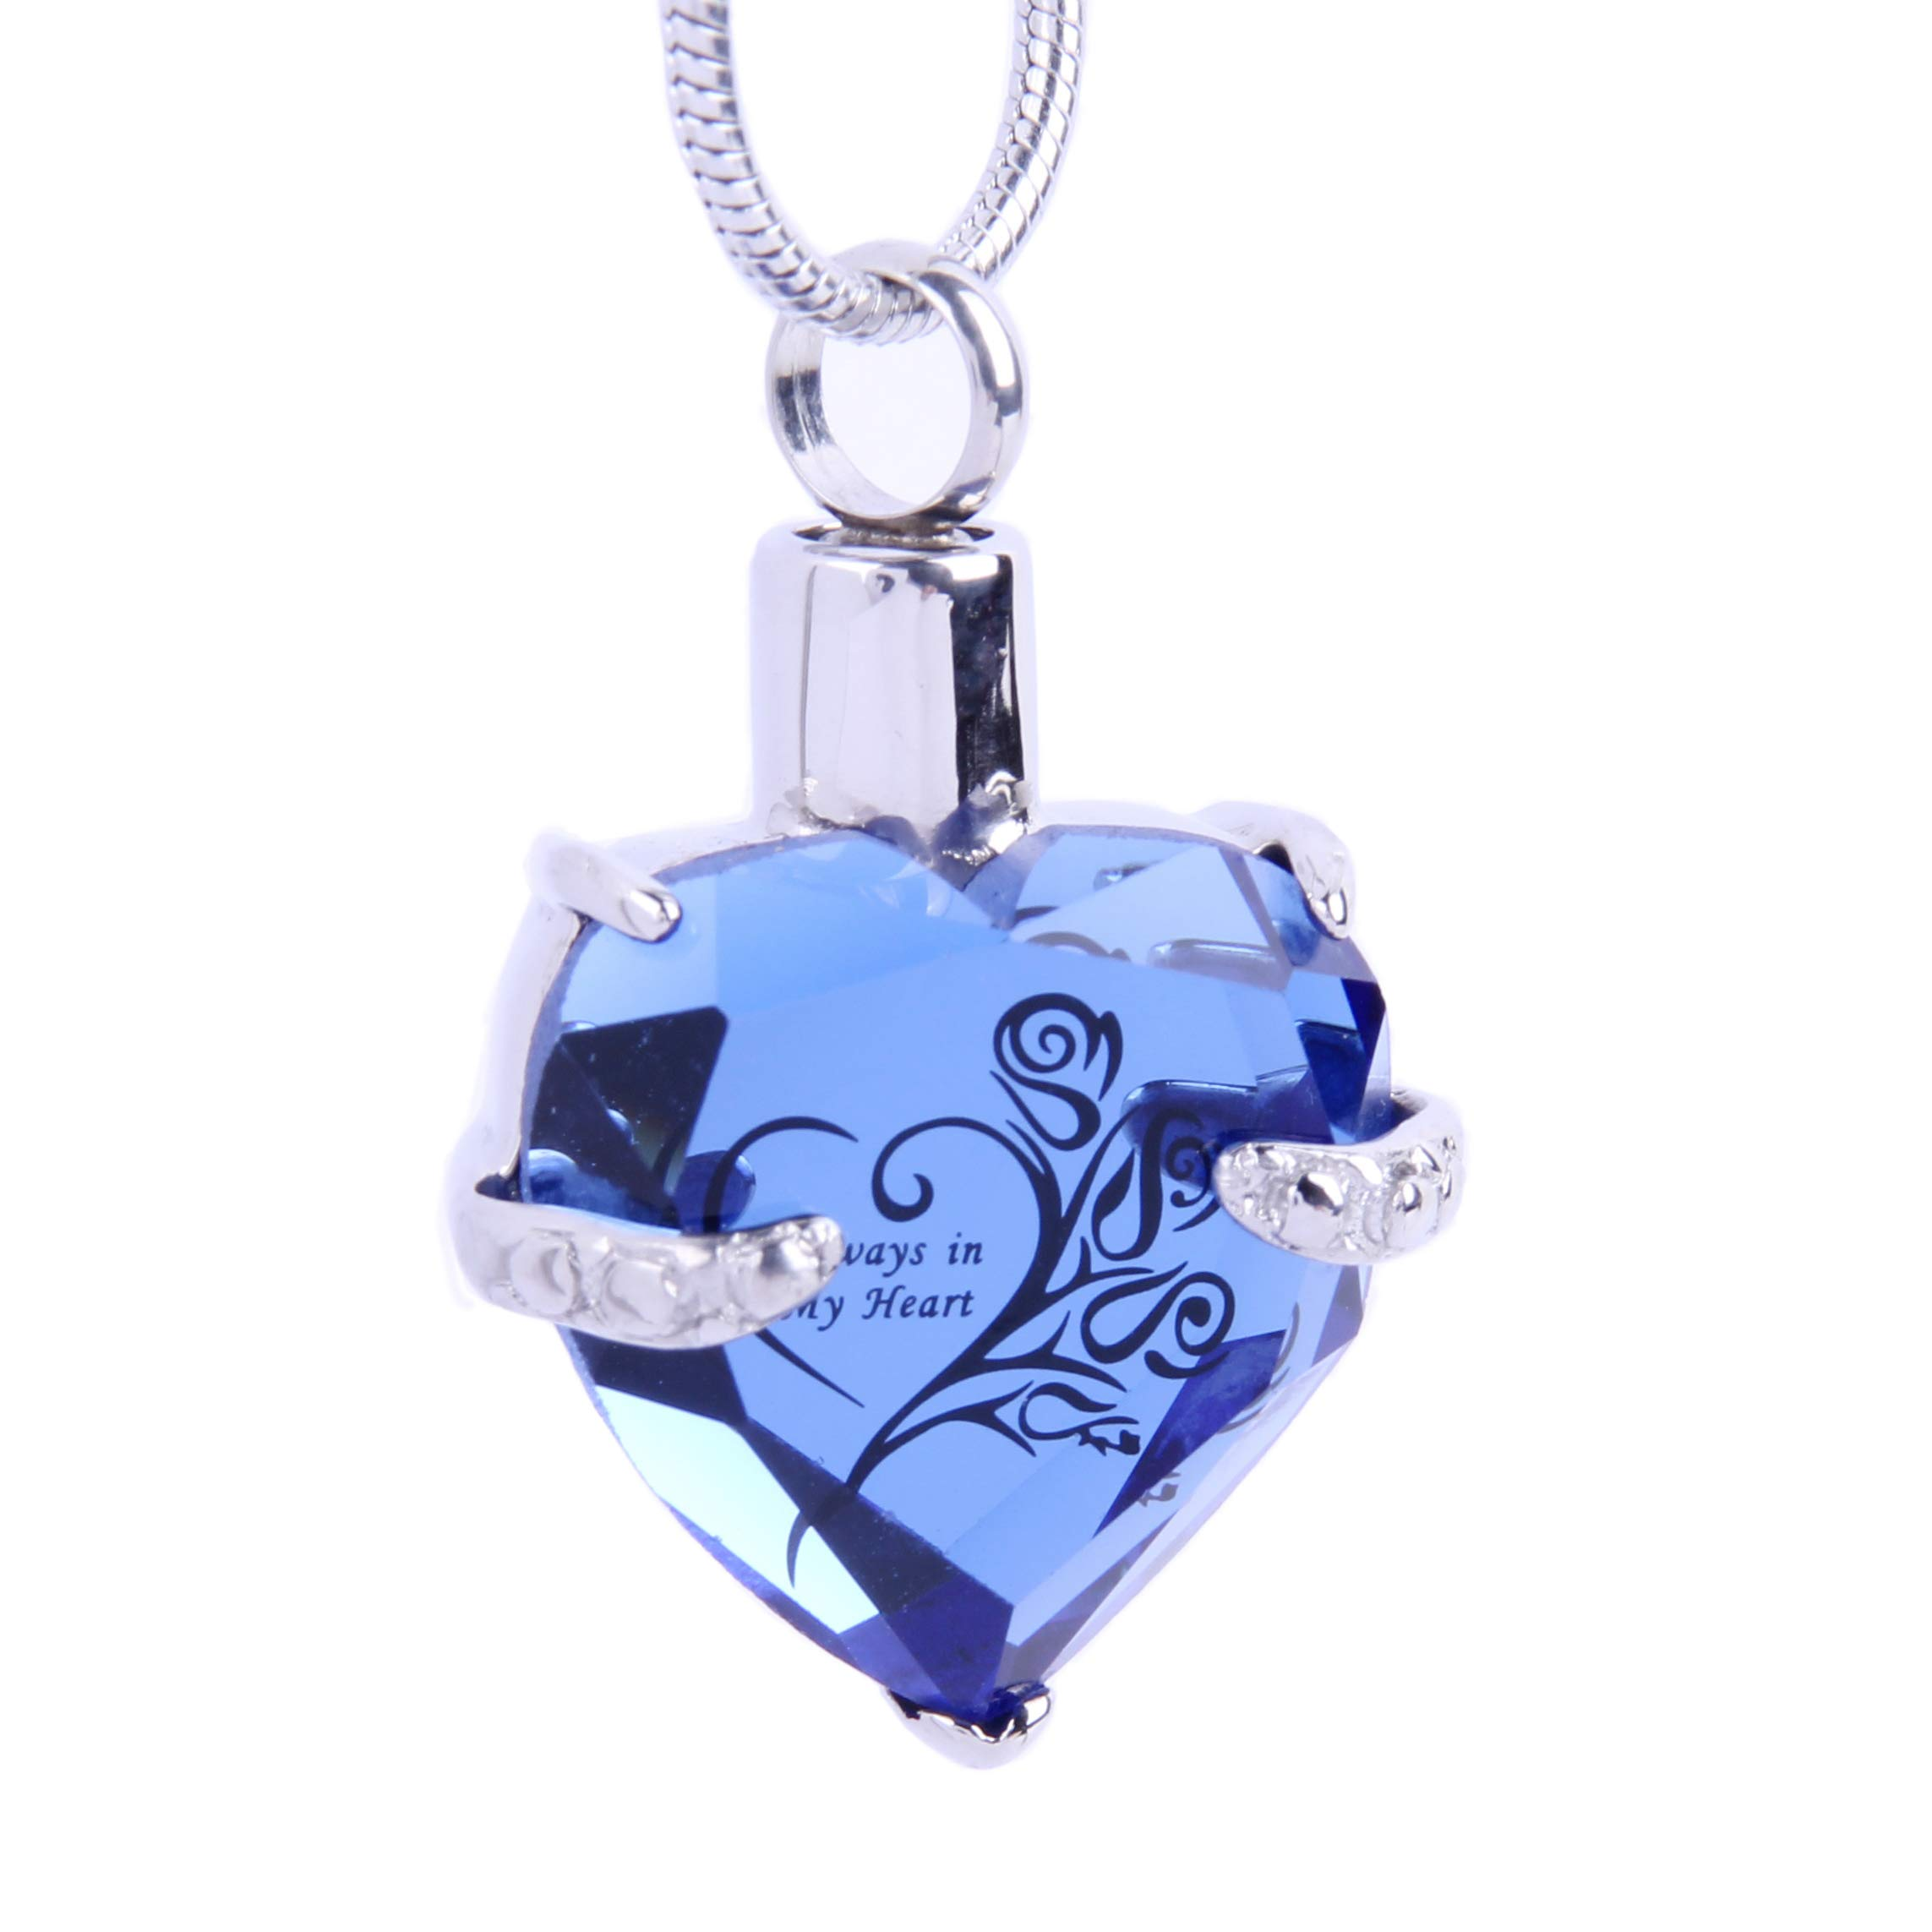 Cremation Jewelry for Ashes Always in My Heart Glass Urn Pendant Necklace +21''Snake Chain (A-Blue)